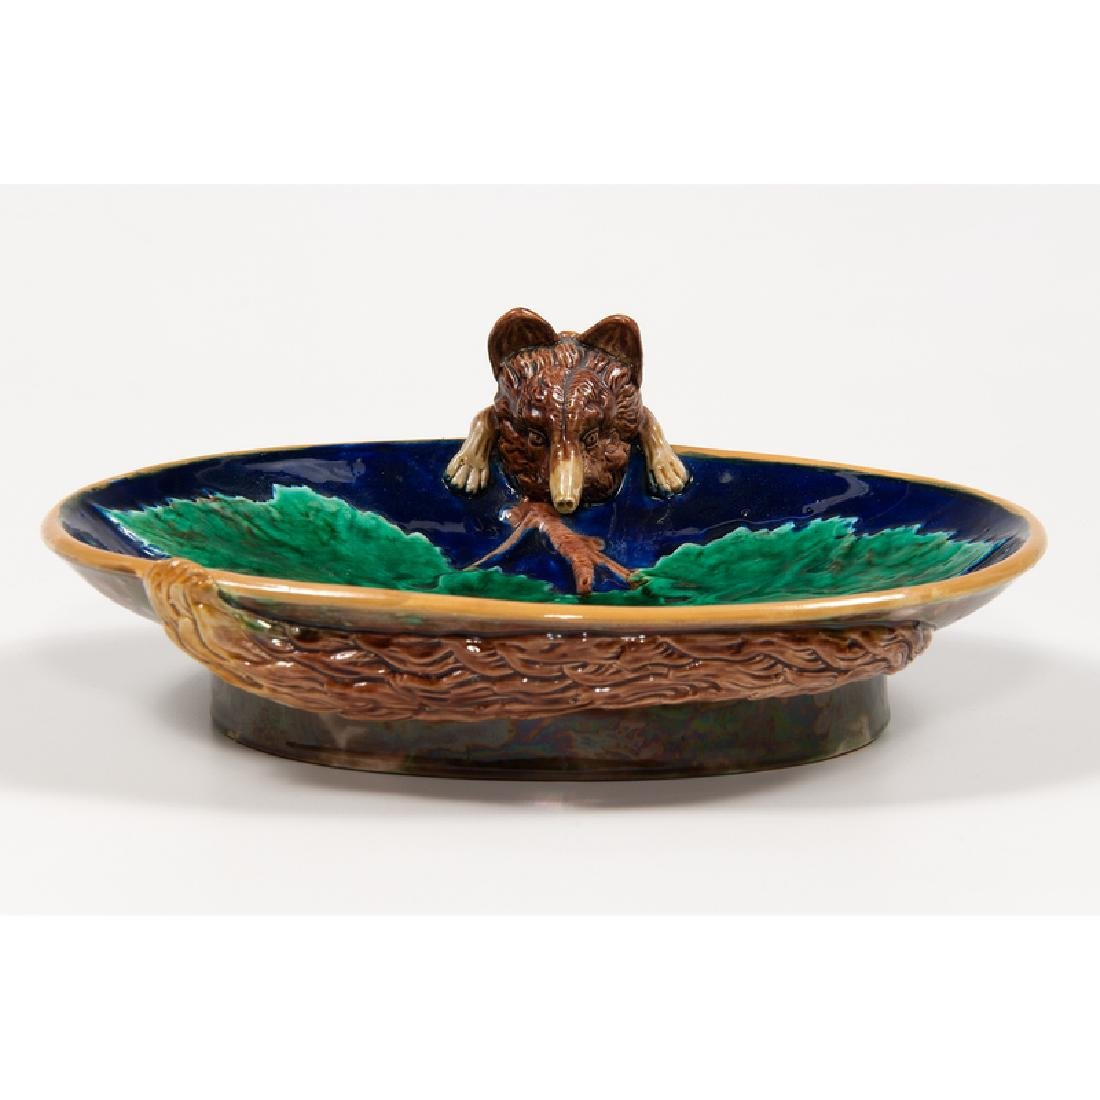 George Jones Majolica Serving Dish